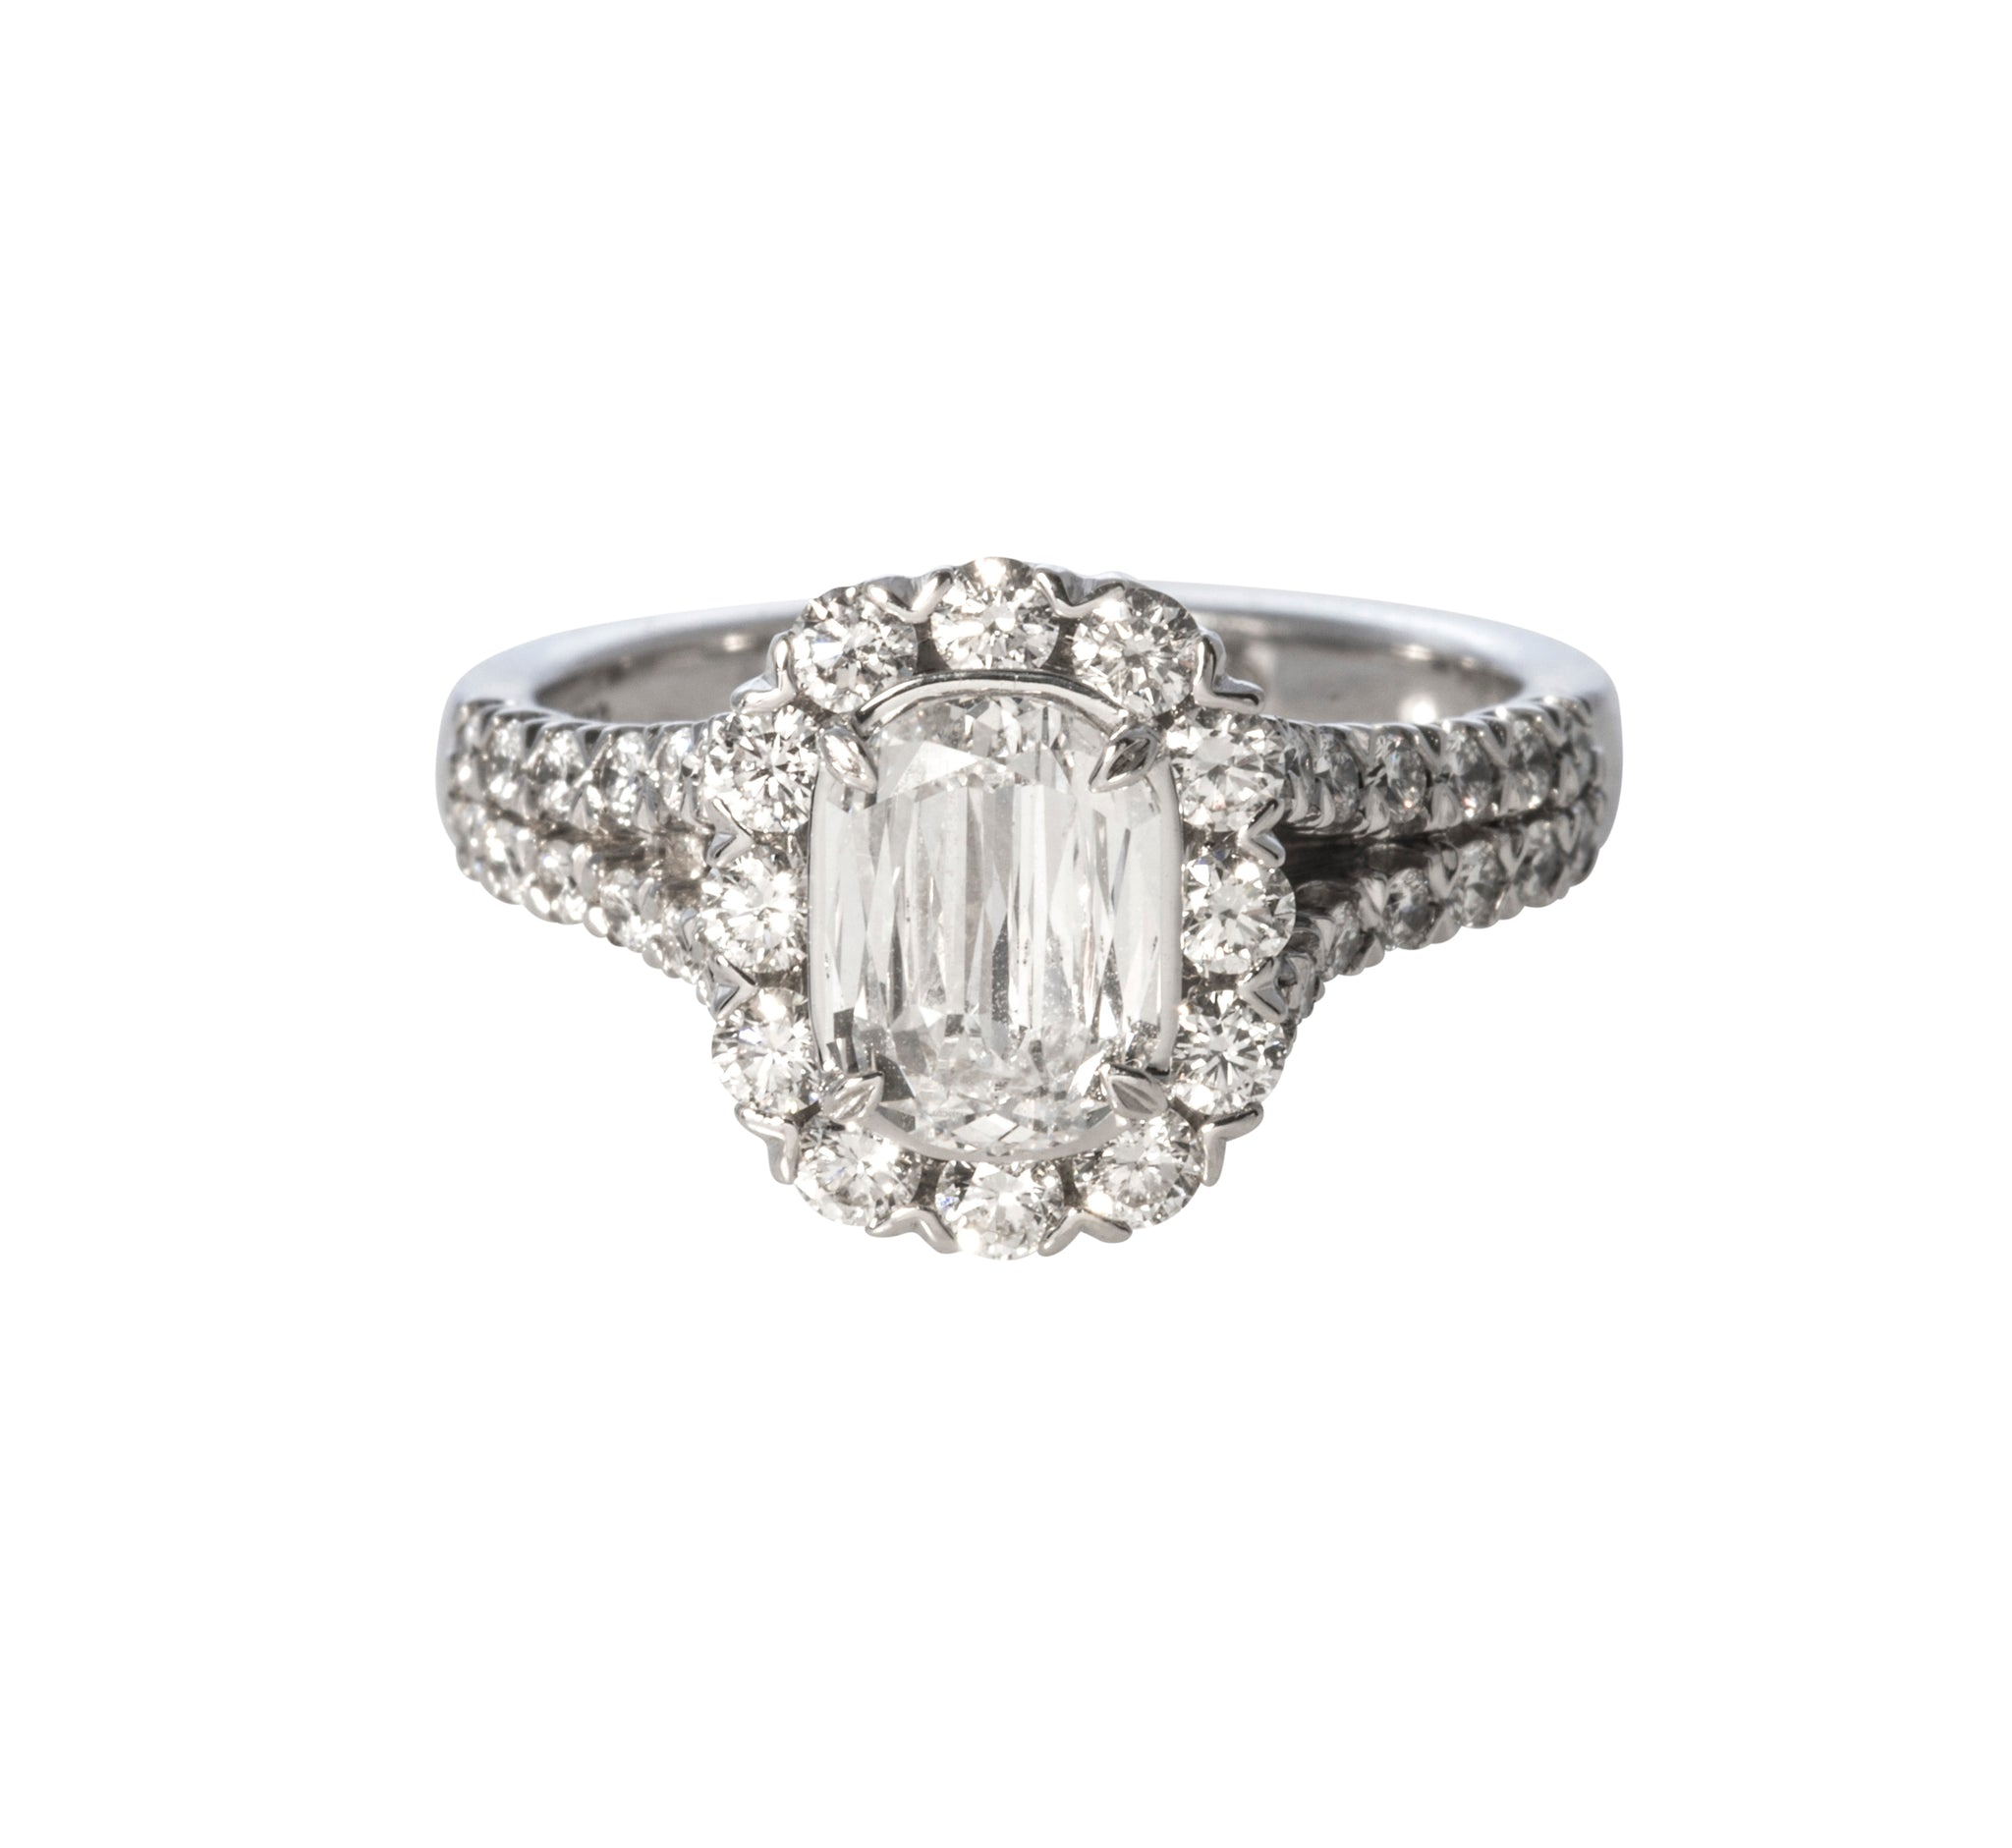 Christopher Designs Crisscut Diamond Engagement Ring